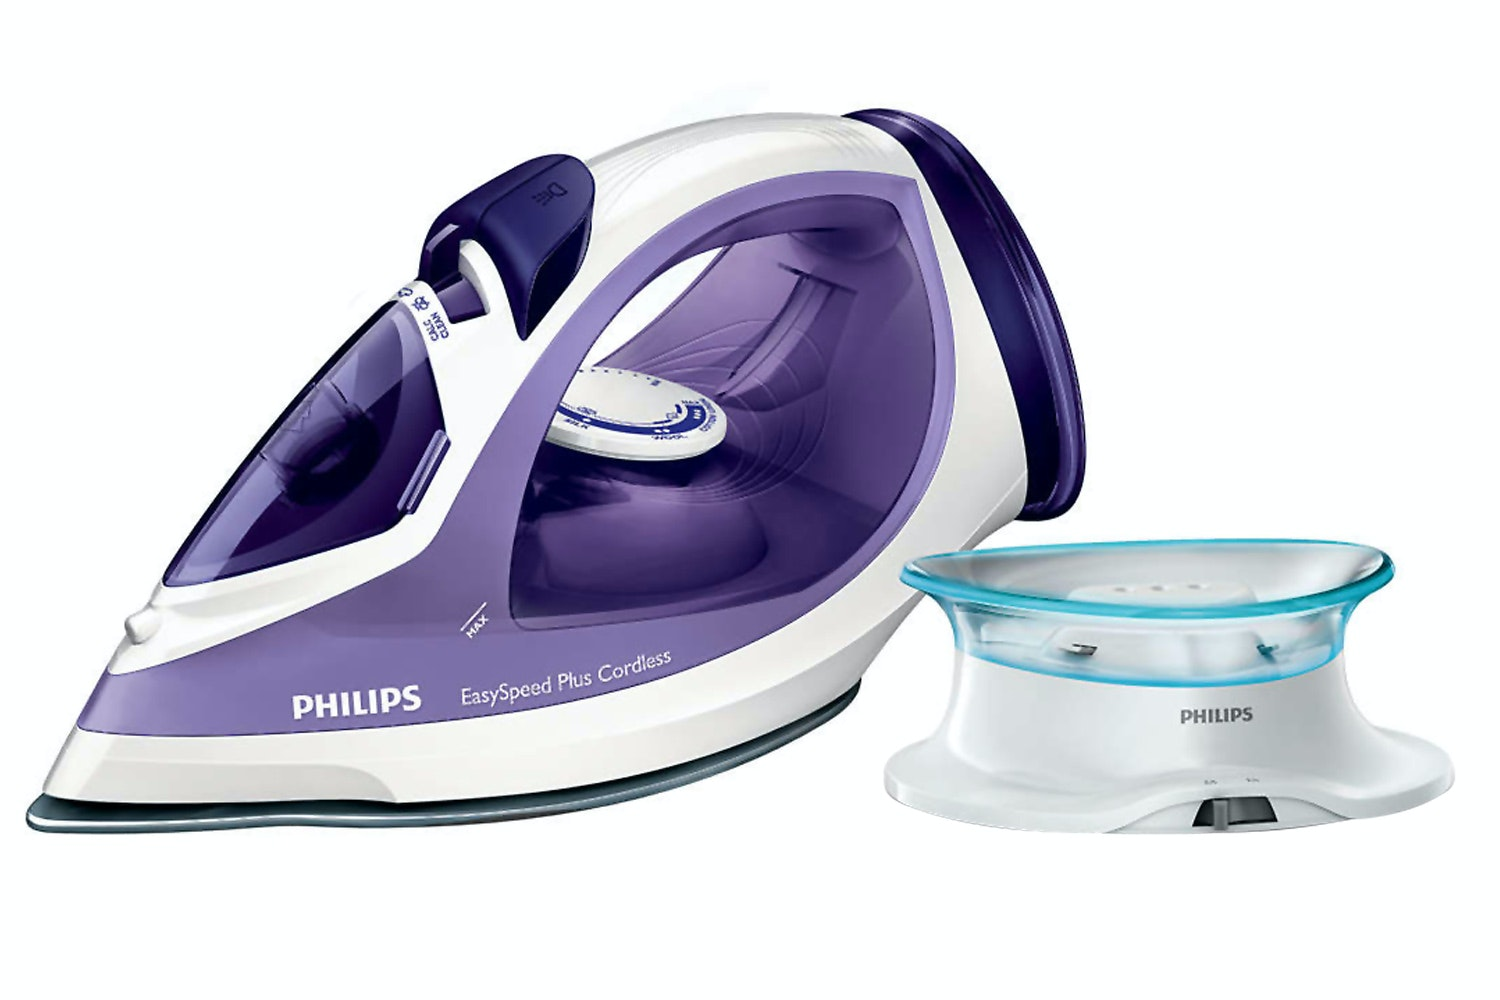 Philips Easy Speed Plus Cordless Steam Iron | GC2086/30